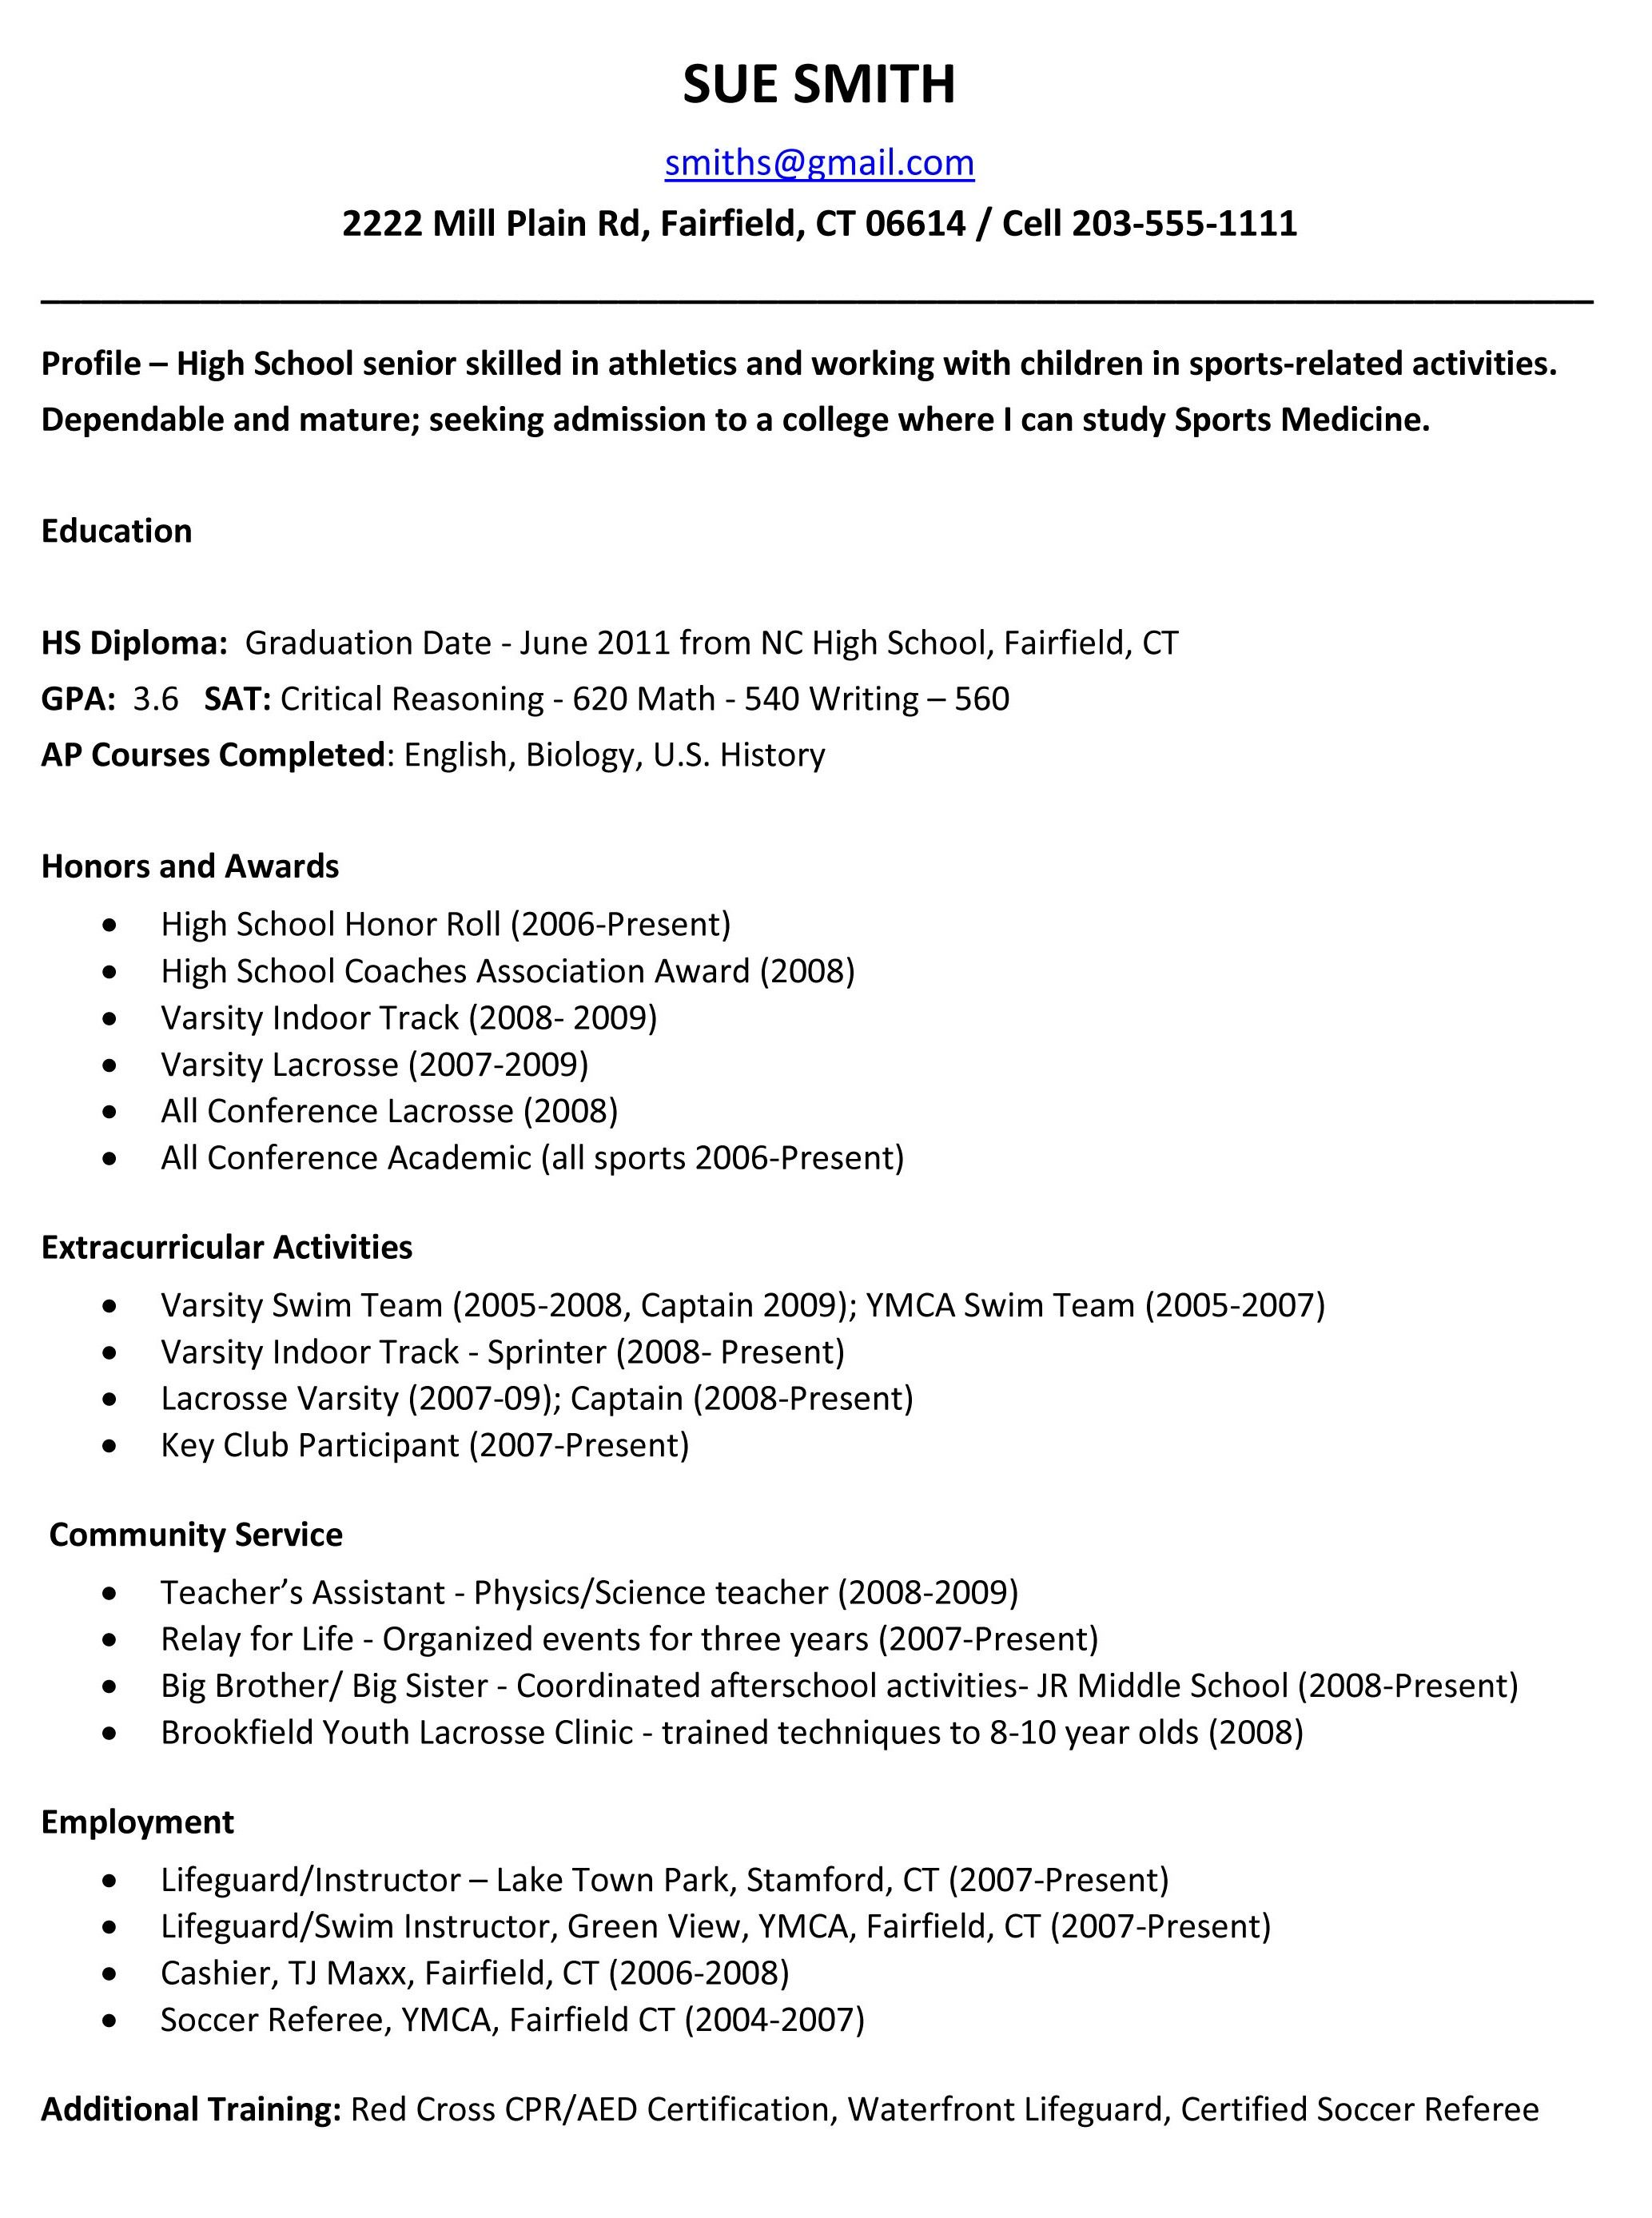 Example Resume For High School Students For College Applications School  Resume Templateregularmidwesterners.com | Regularmidwesterners  Example Of Resume For High School Student